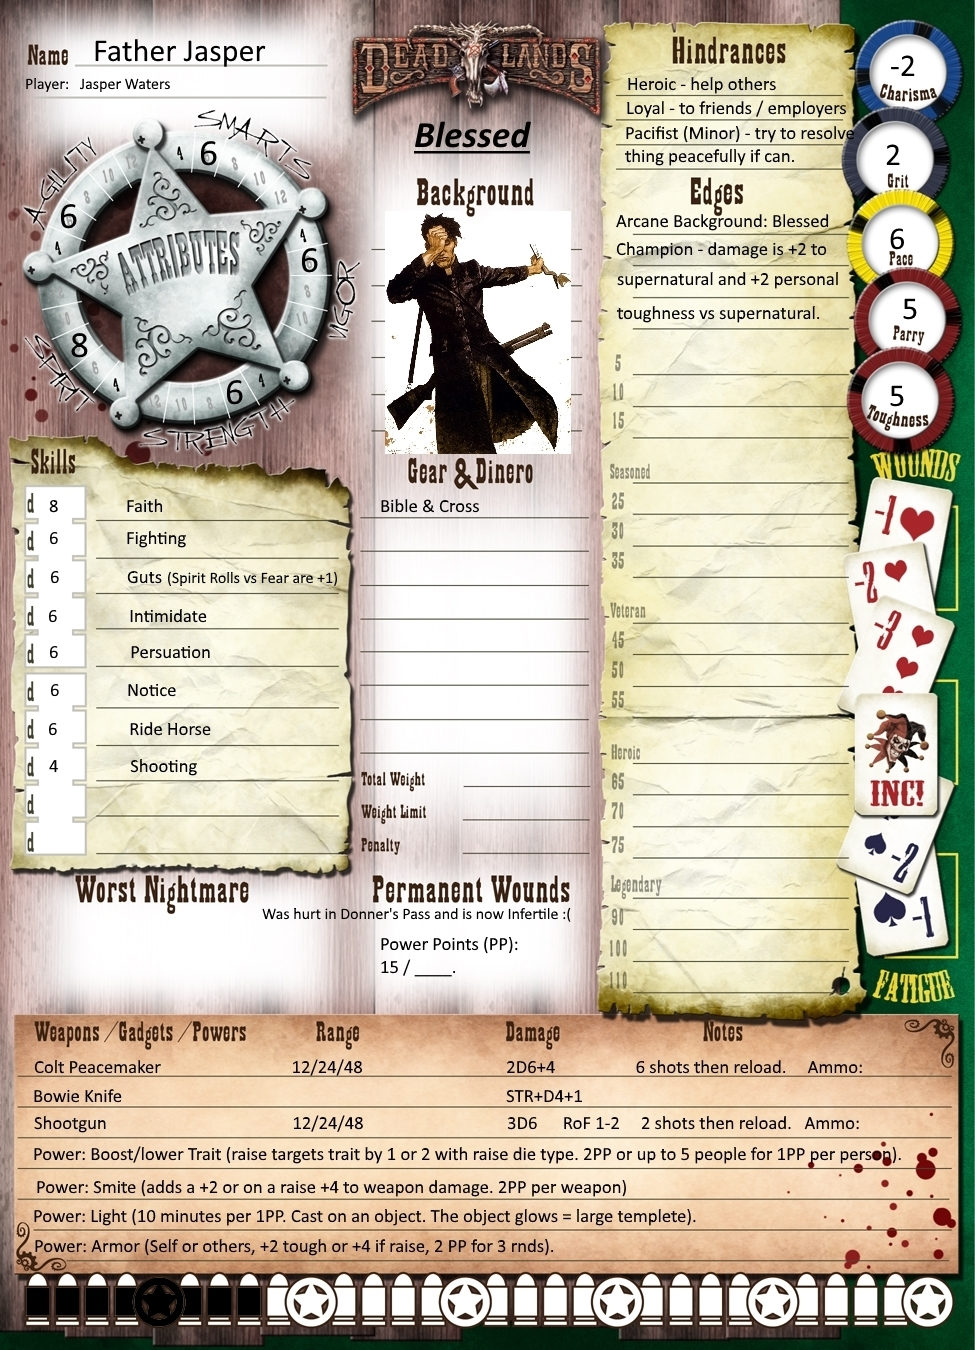 Deadlands_Explorer_sheet_Jasper_.jpg